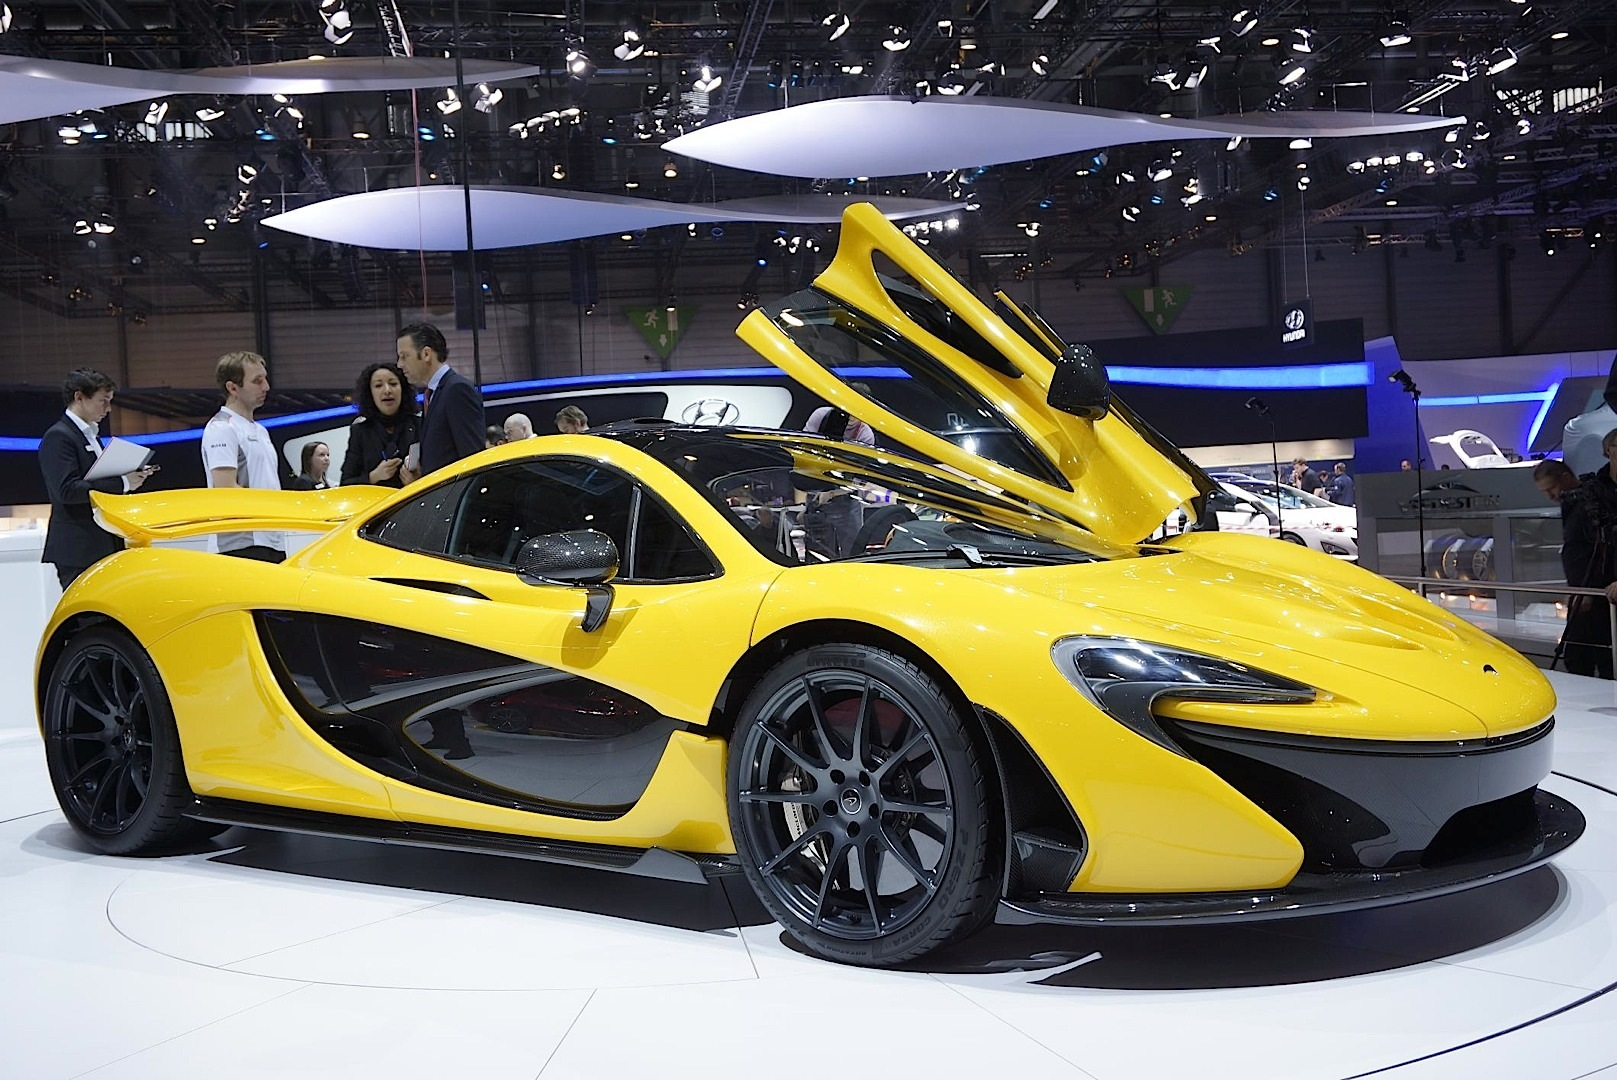 mclaren p1 is the hybrid lahypercar video live photos. Black Bedroom Furniture Sets. Home Design Ideas